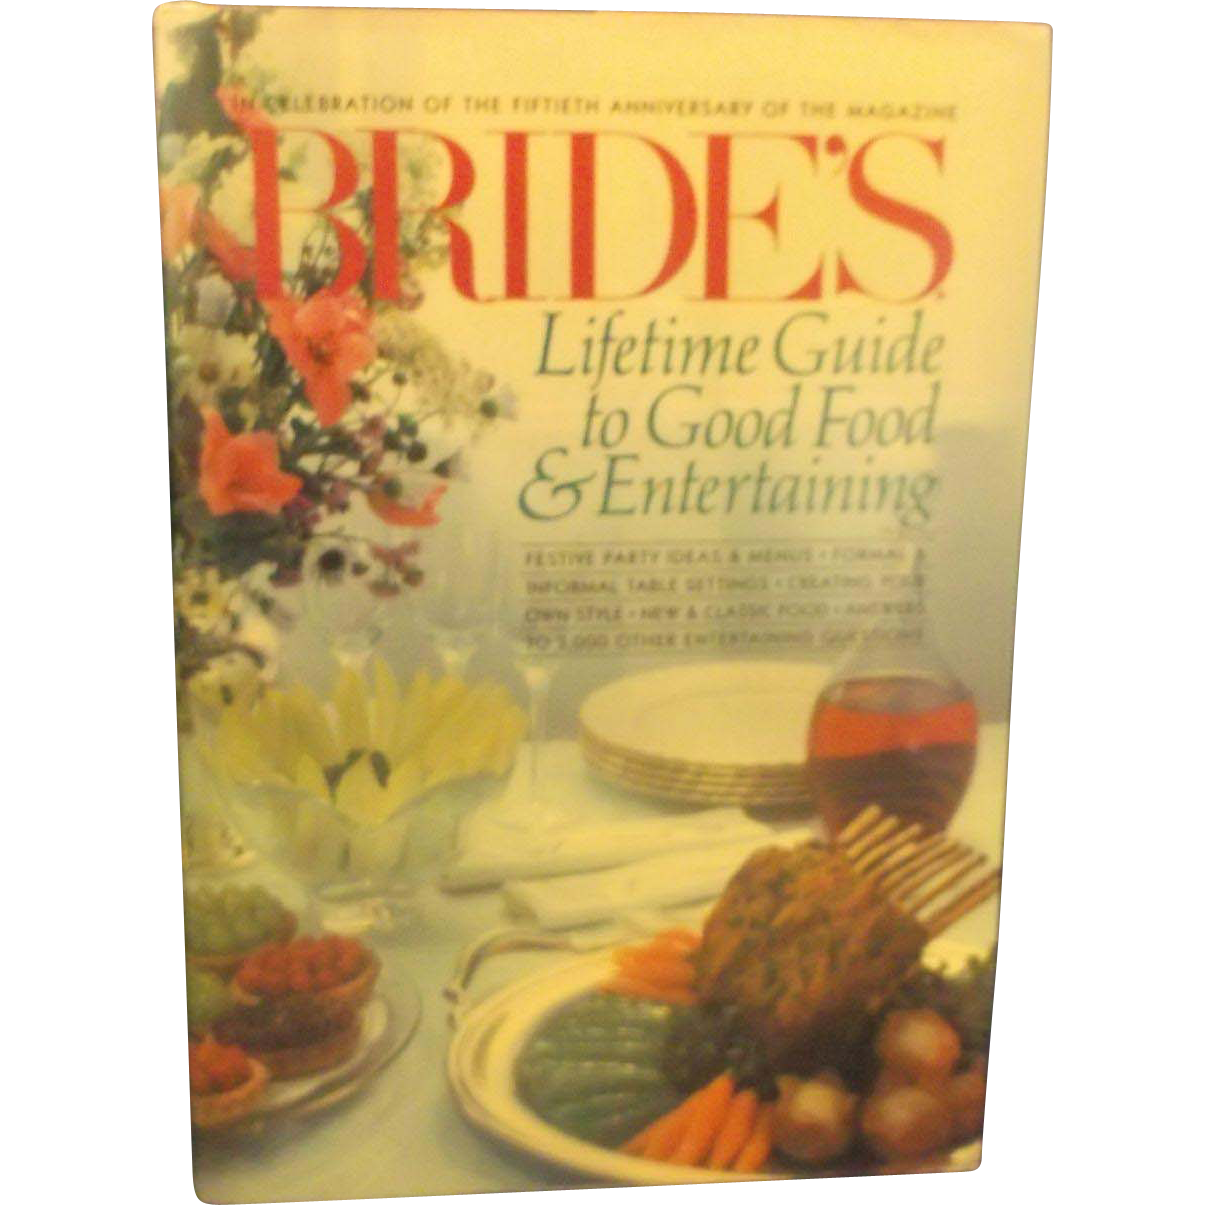 Bride's Lifetime Guide to Good Food & Entertaining 1984 First Edition